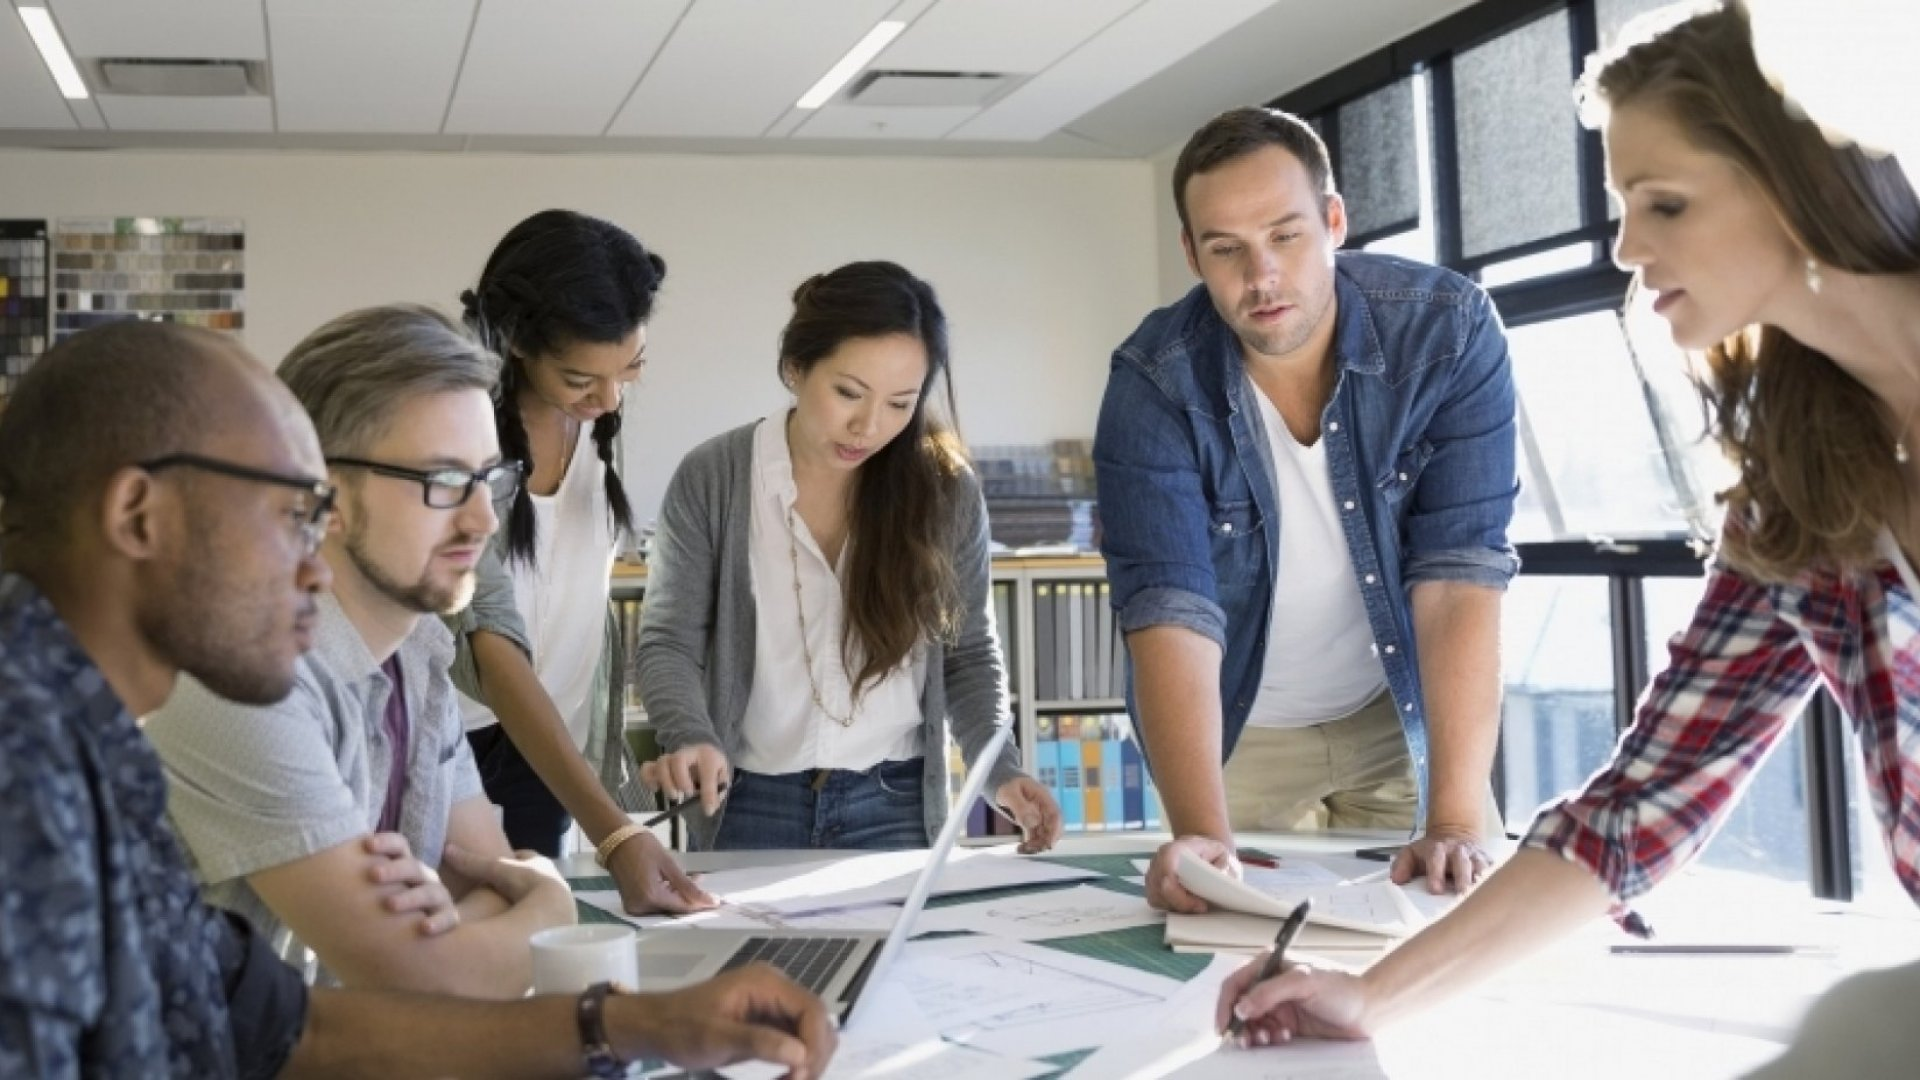 3 Ways You Can Use Data For Better Employee Relationships Right Now